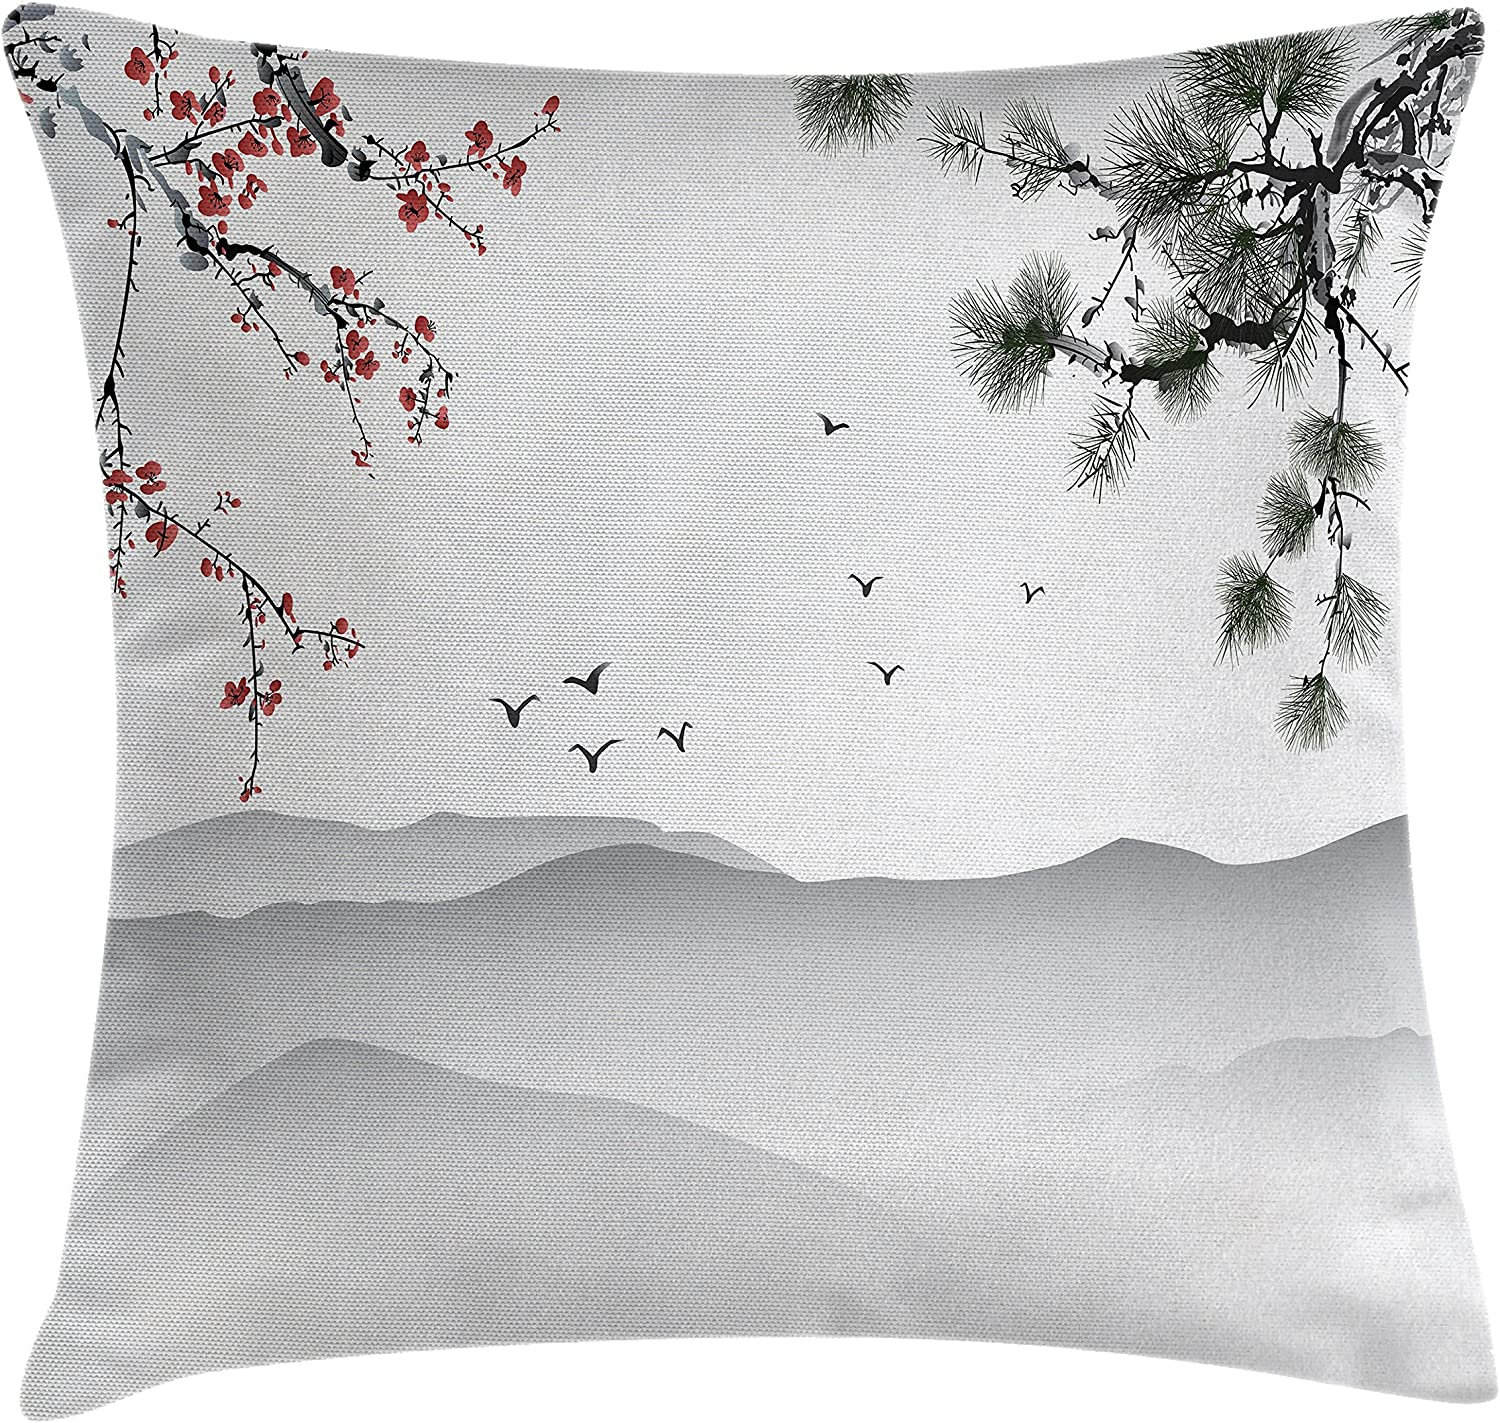 Amazon Com Ambesonne Floral Throw Pillow Cushion Cover Chinese Painting Style Artwork With Tree Branches Birds Mountains Landscape Art Decorative Square Accent Pillow Case 20 X 20 Red Green Black Home Kitchen